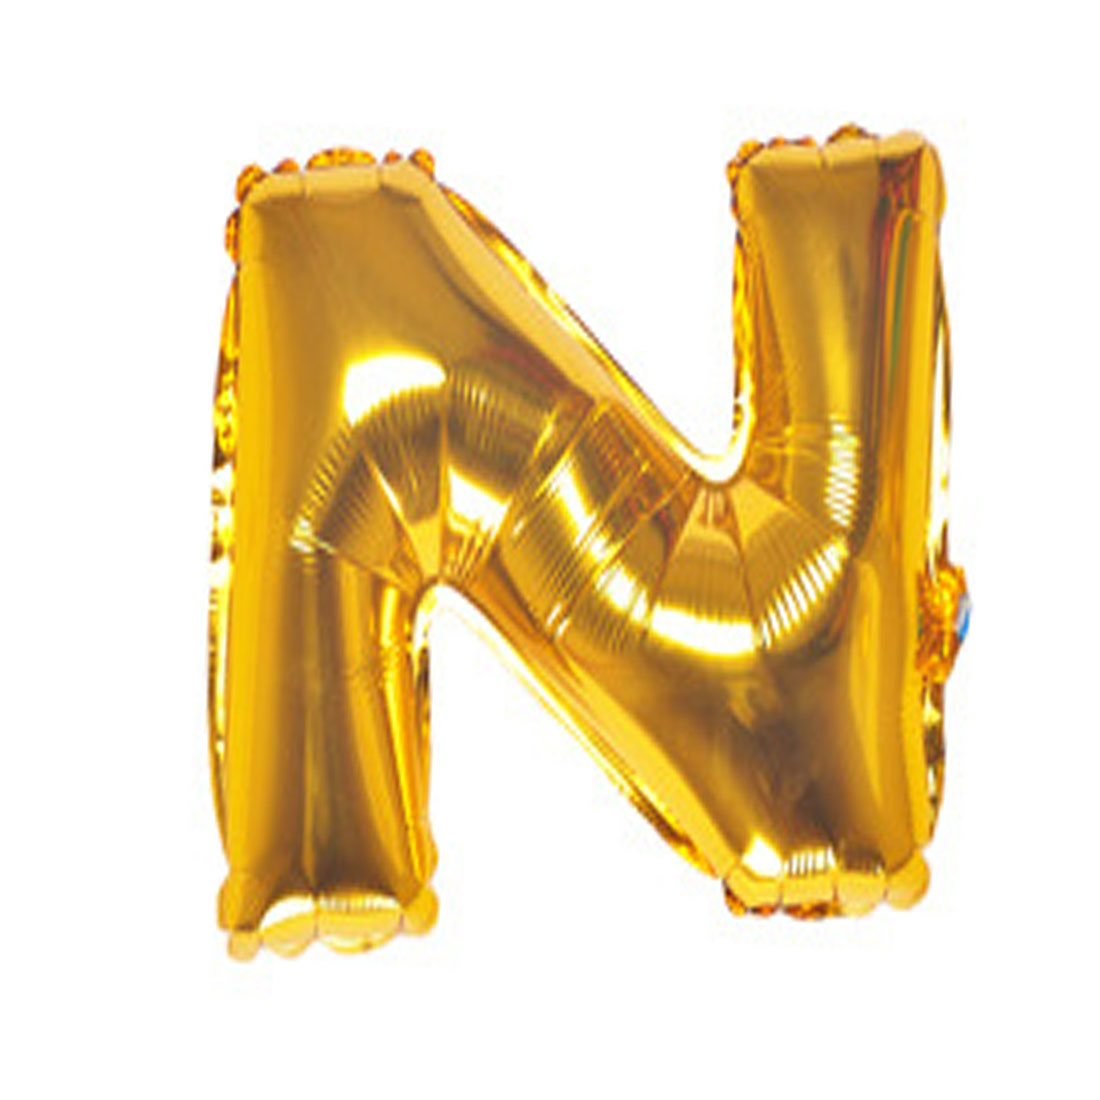 "Unique Bargains 40"" Gold Tone Foil Letter N Balloon Helium Birthday Wedding Festival Decor"